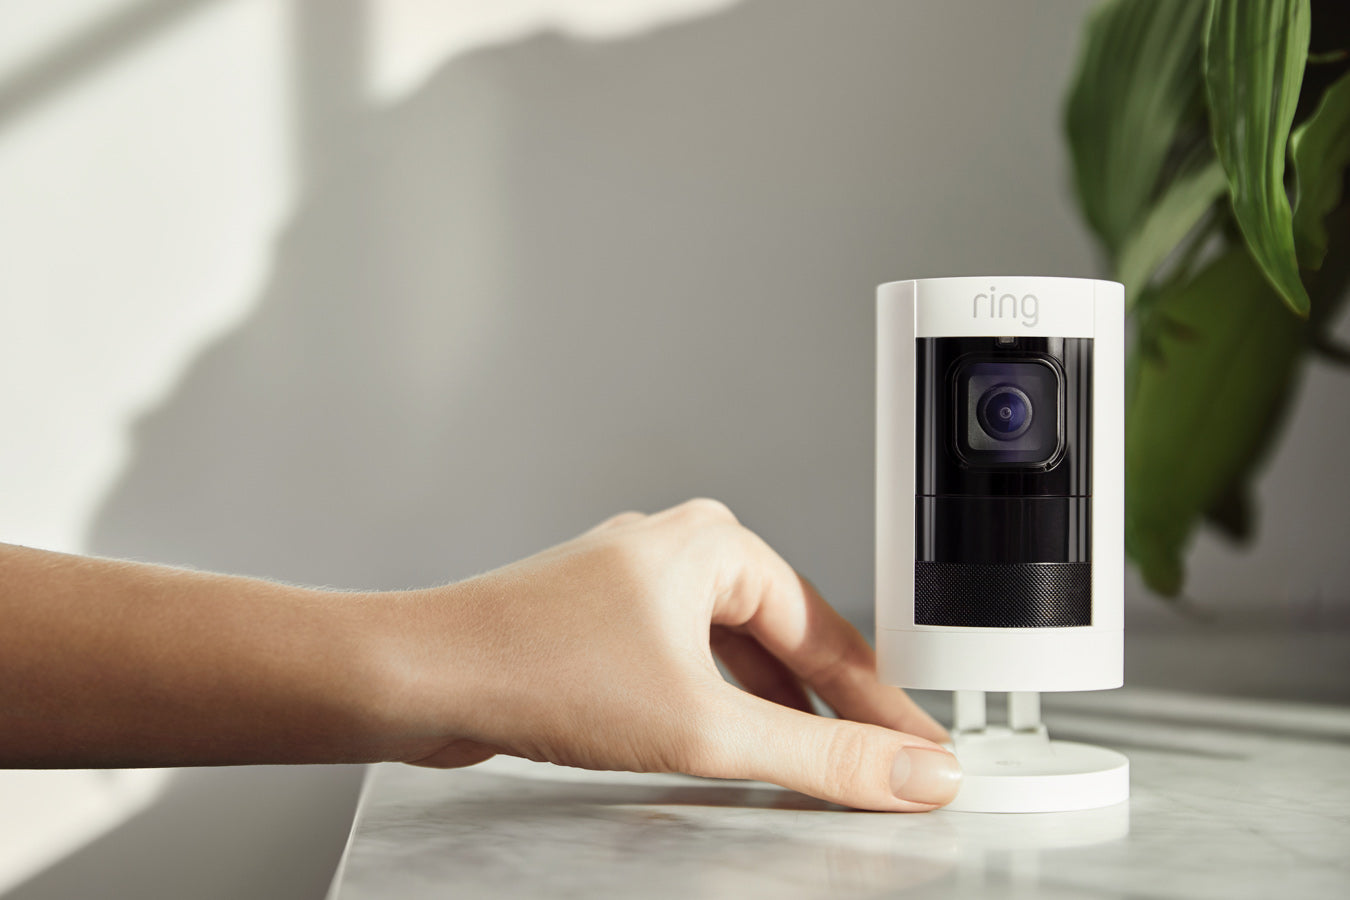 Find your ideal Stick Up Cam setting for Smart Home Security